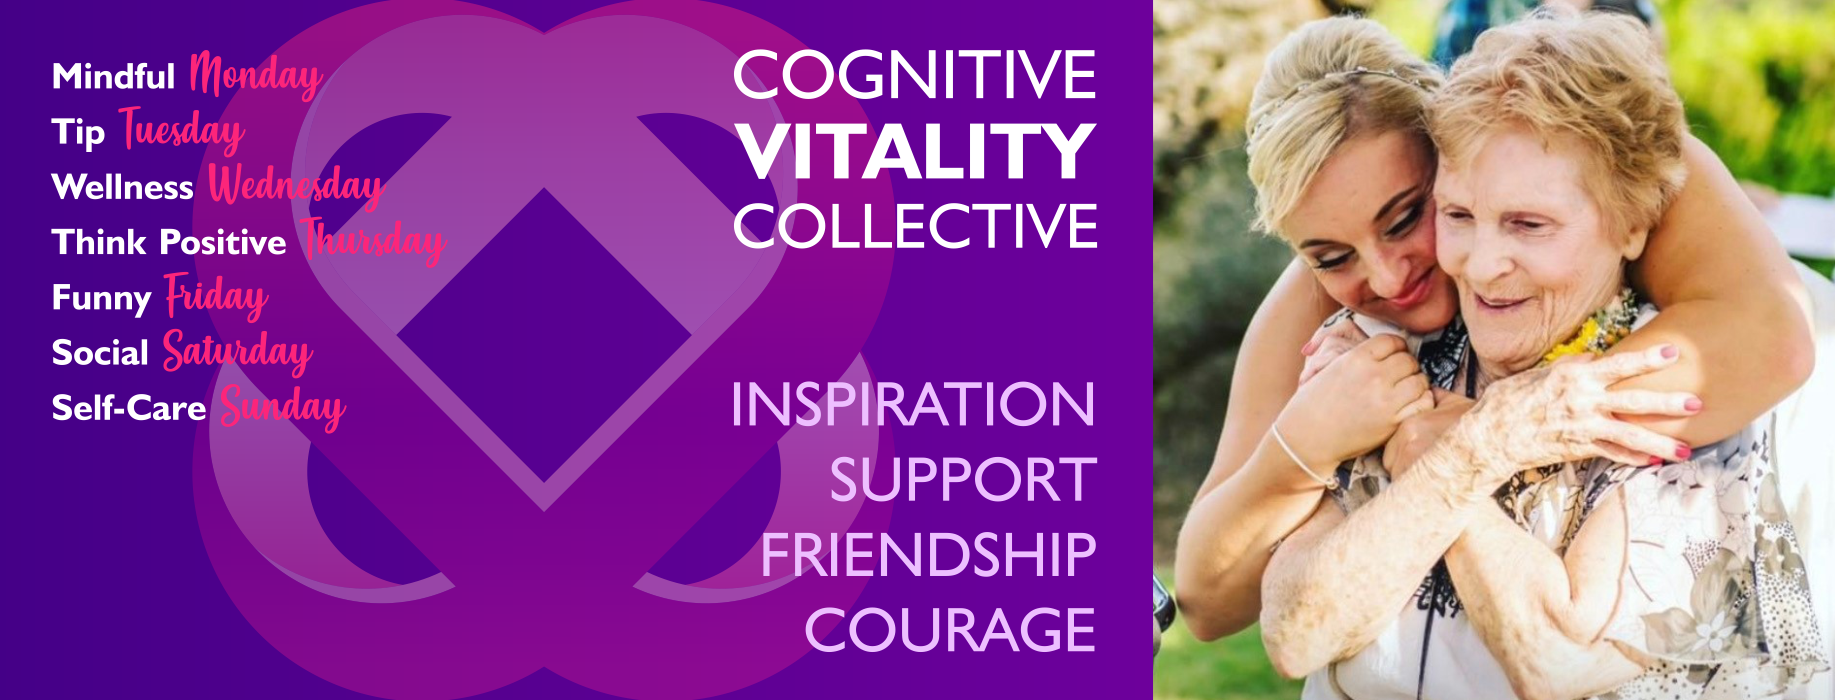 Cognitive Vitality Collective Cover Page & Email